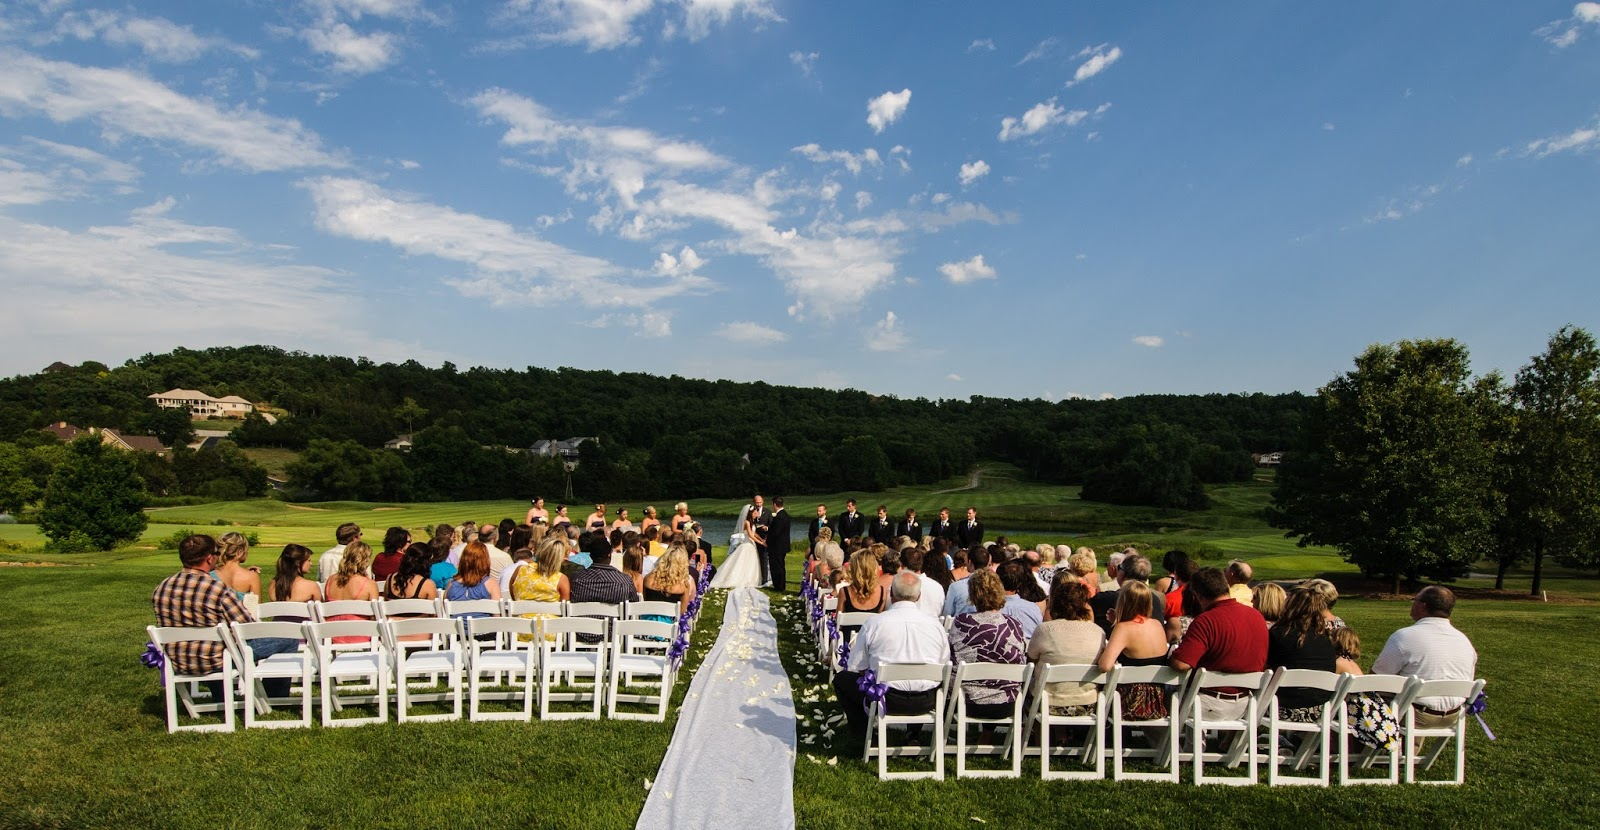 Renew Your Vows At Old Kinderhook